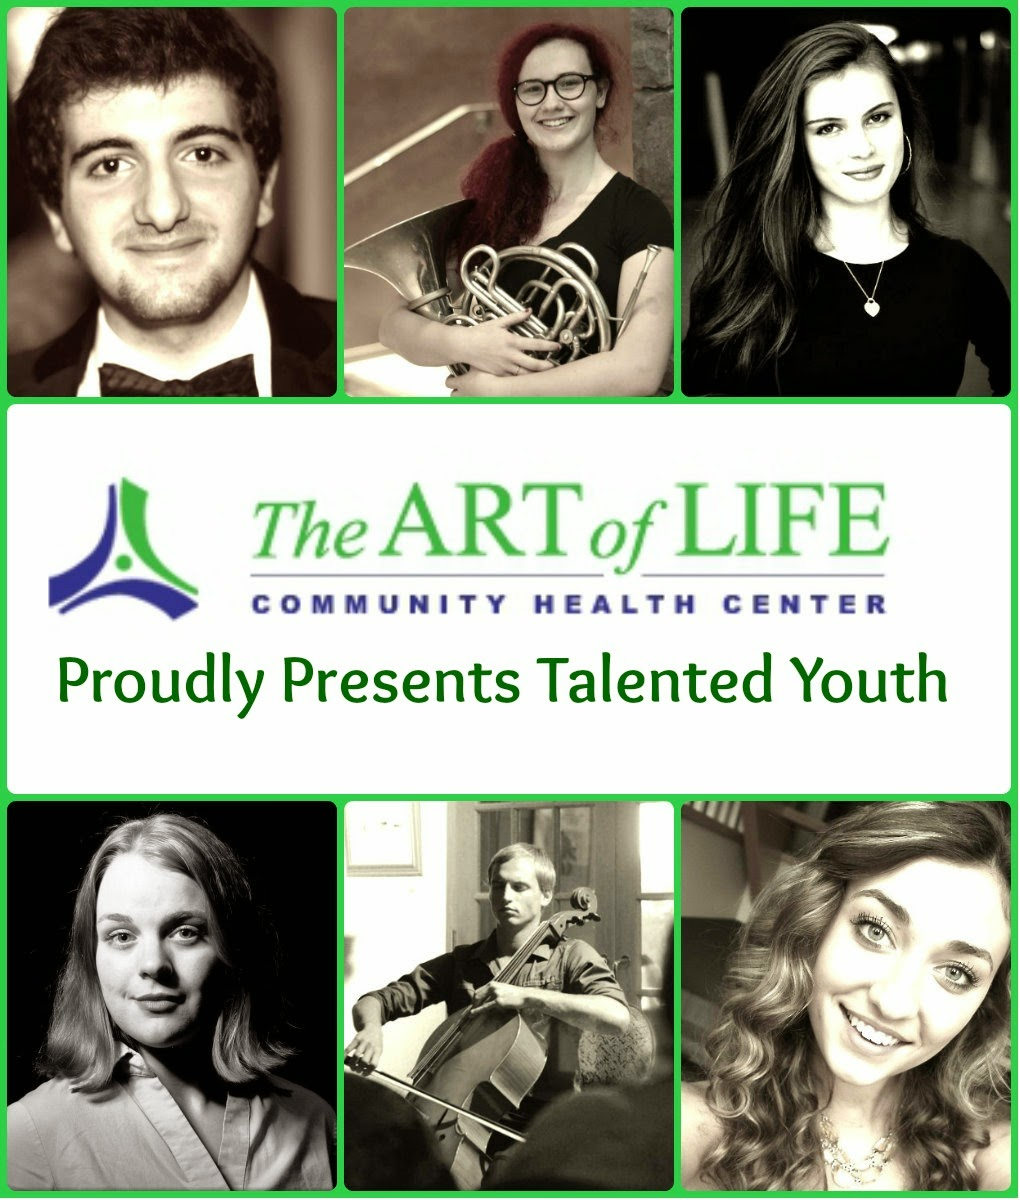 Art of Life CHC Proudly Presents Talented Youth